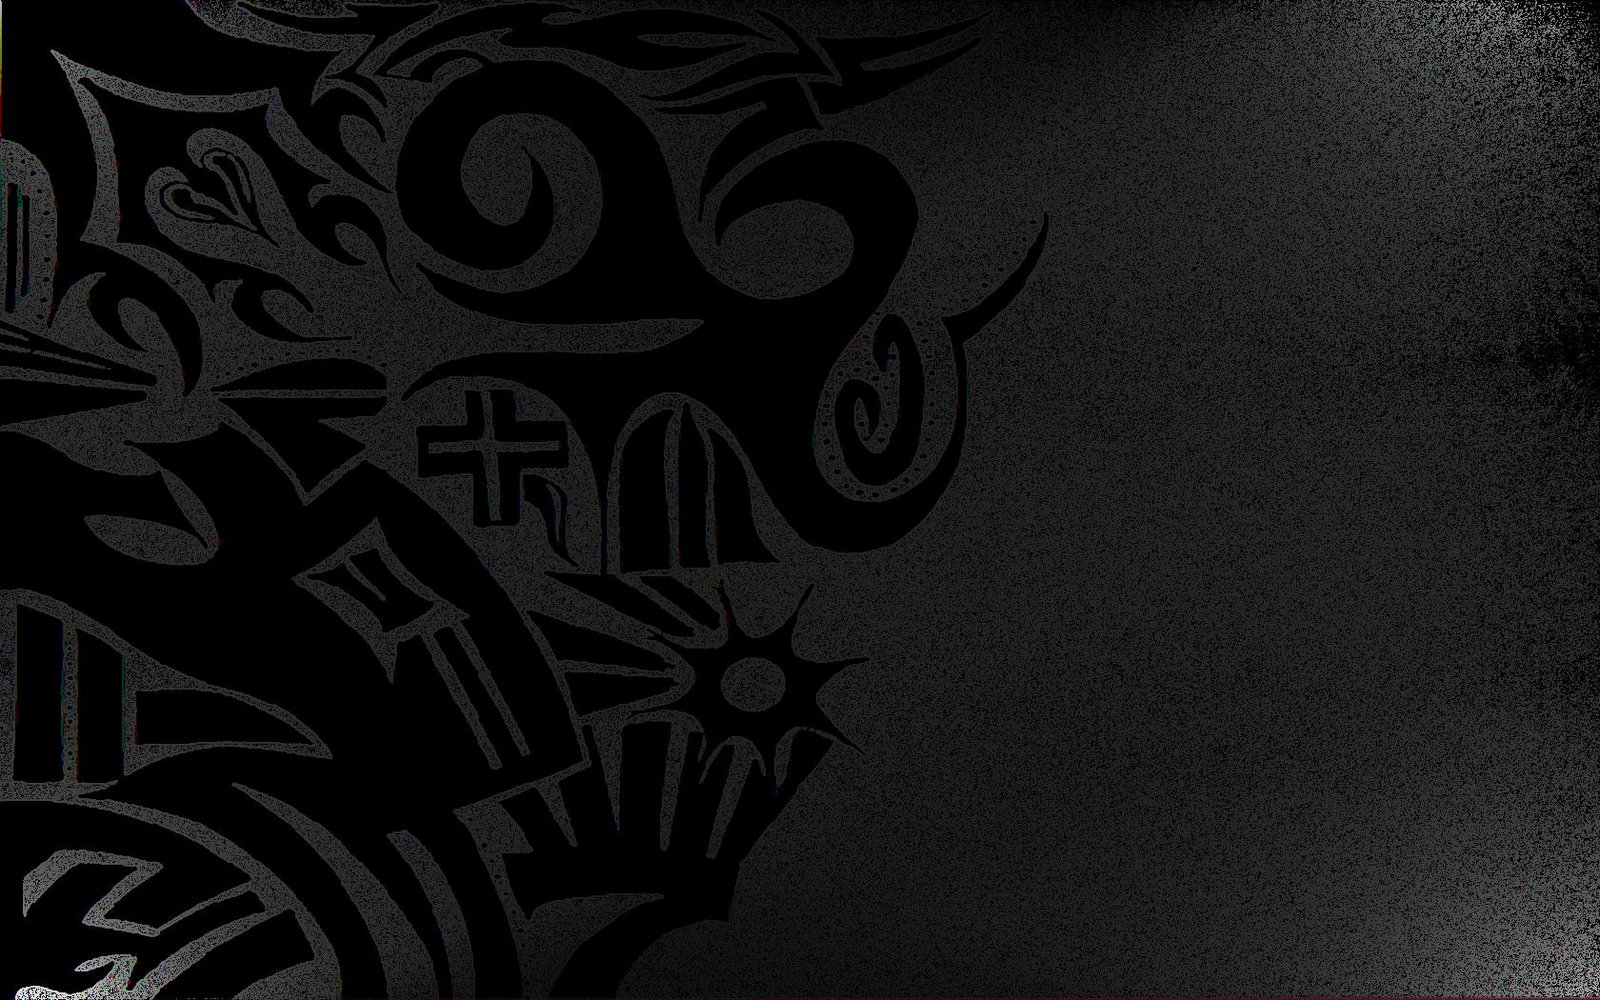 wallpaper hd 2560x1440 skull